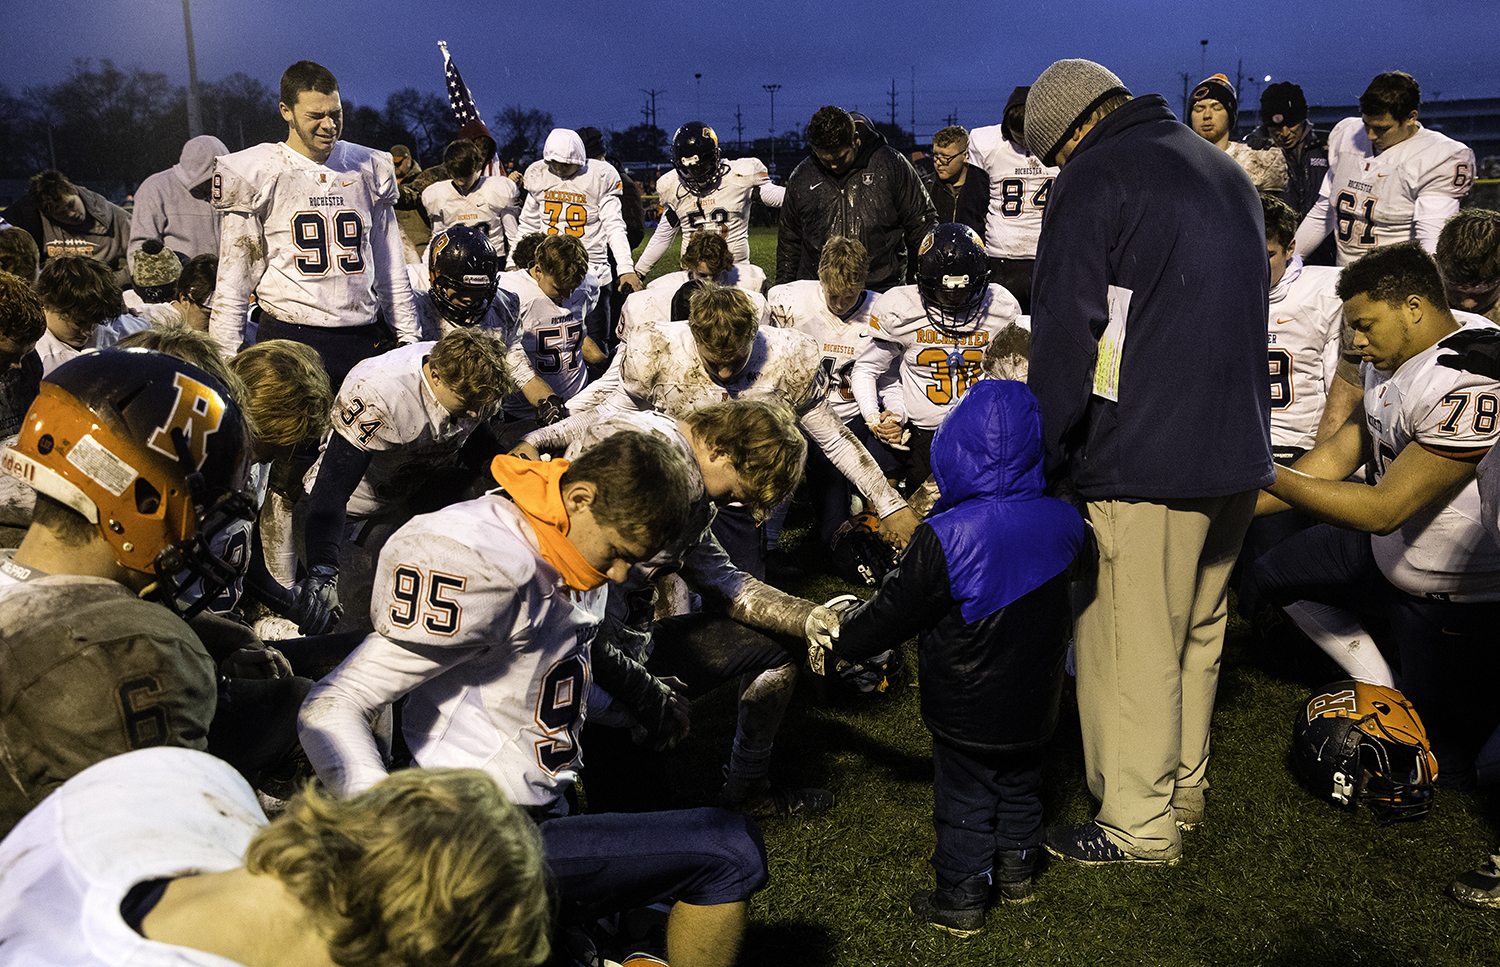 Rochester's Jonathon McKenzie says a prayer after the Rockets lost to Bishop McNamara during the Class 4A semifinal at Kankakee Bishop McNamara Saturday, Nov. 17, 2018. [Ted Schurter/The State Journal-Register]